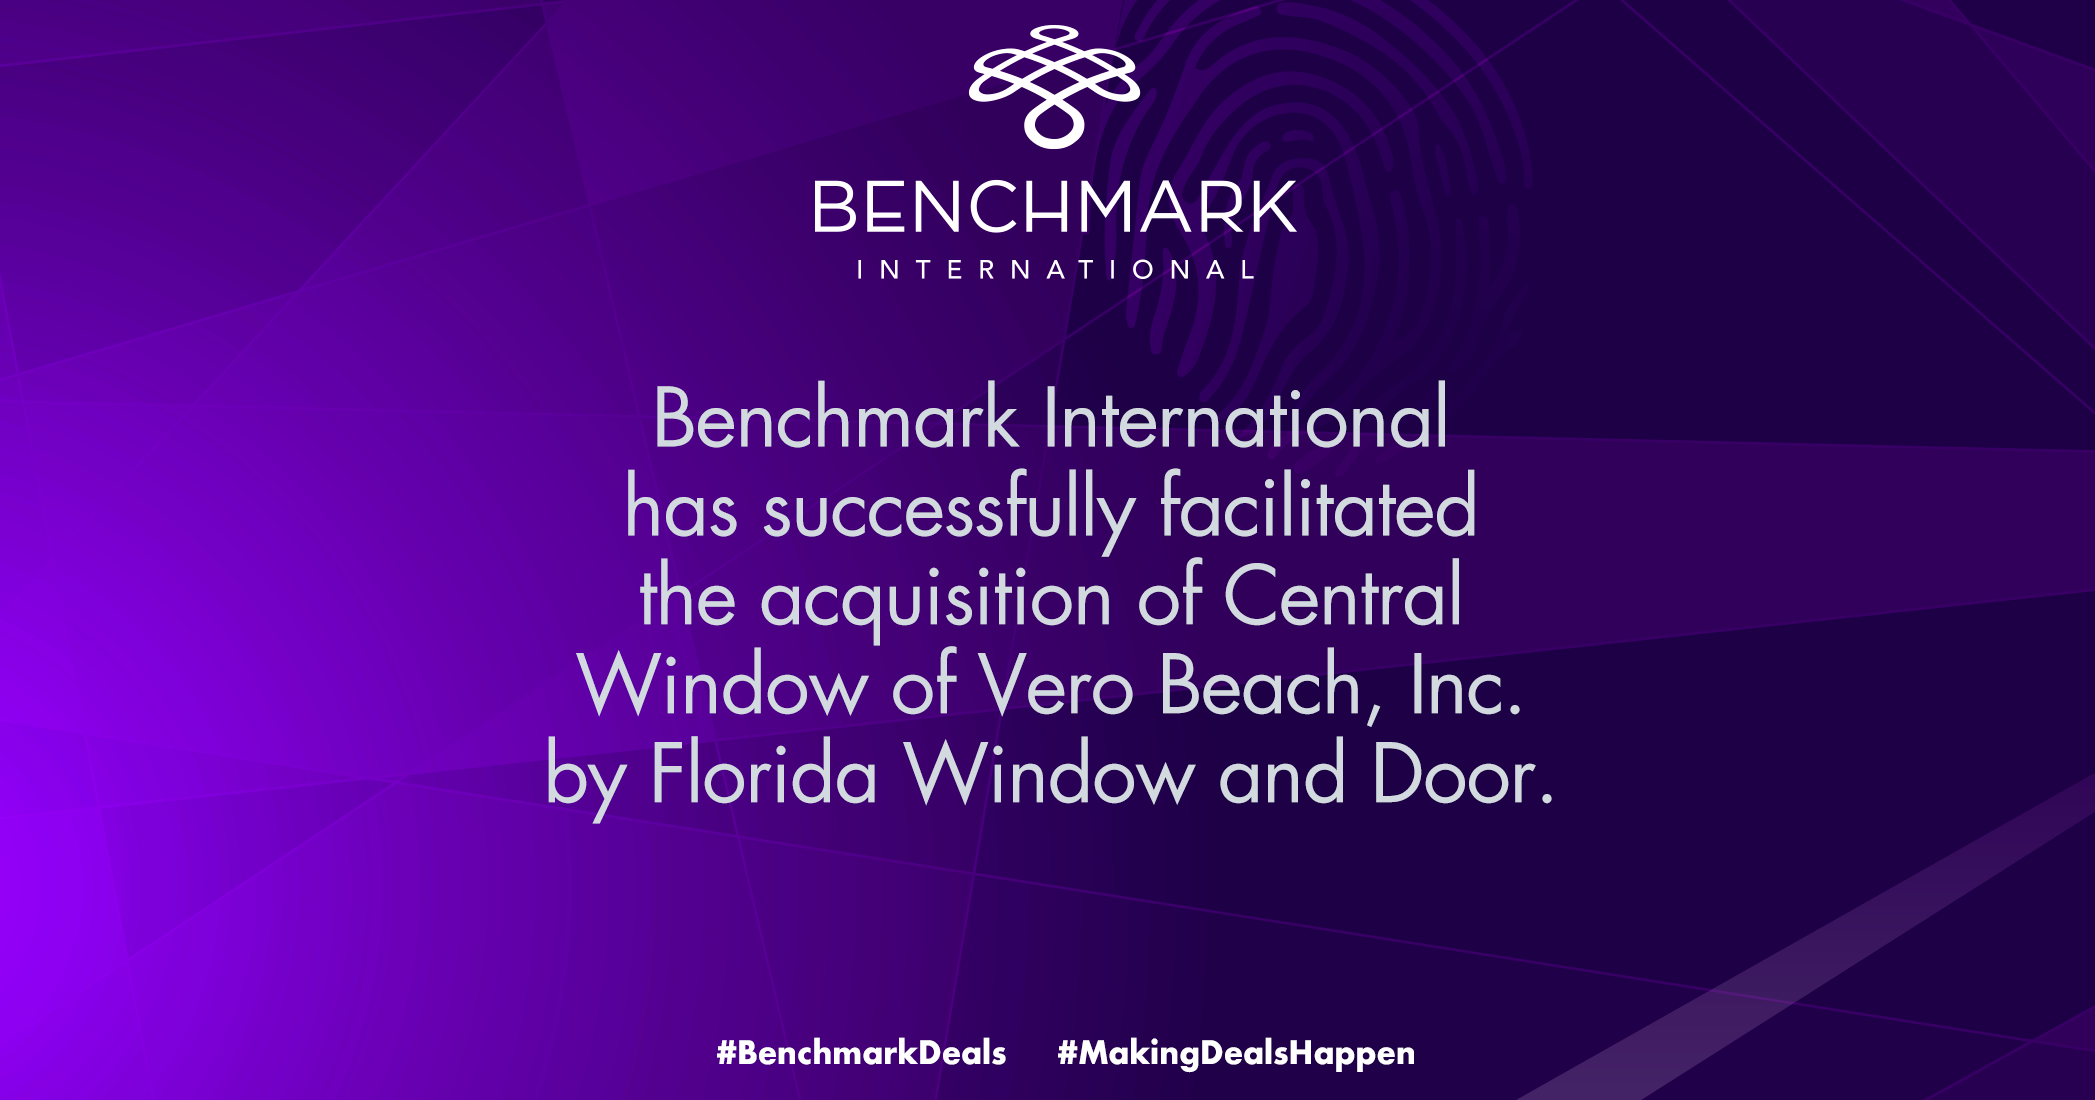 Benchmark International has successfully facilitated the acquisition of Central Window of Vero Beach, Inc. by Florida Window and Door.